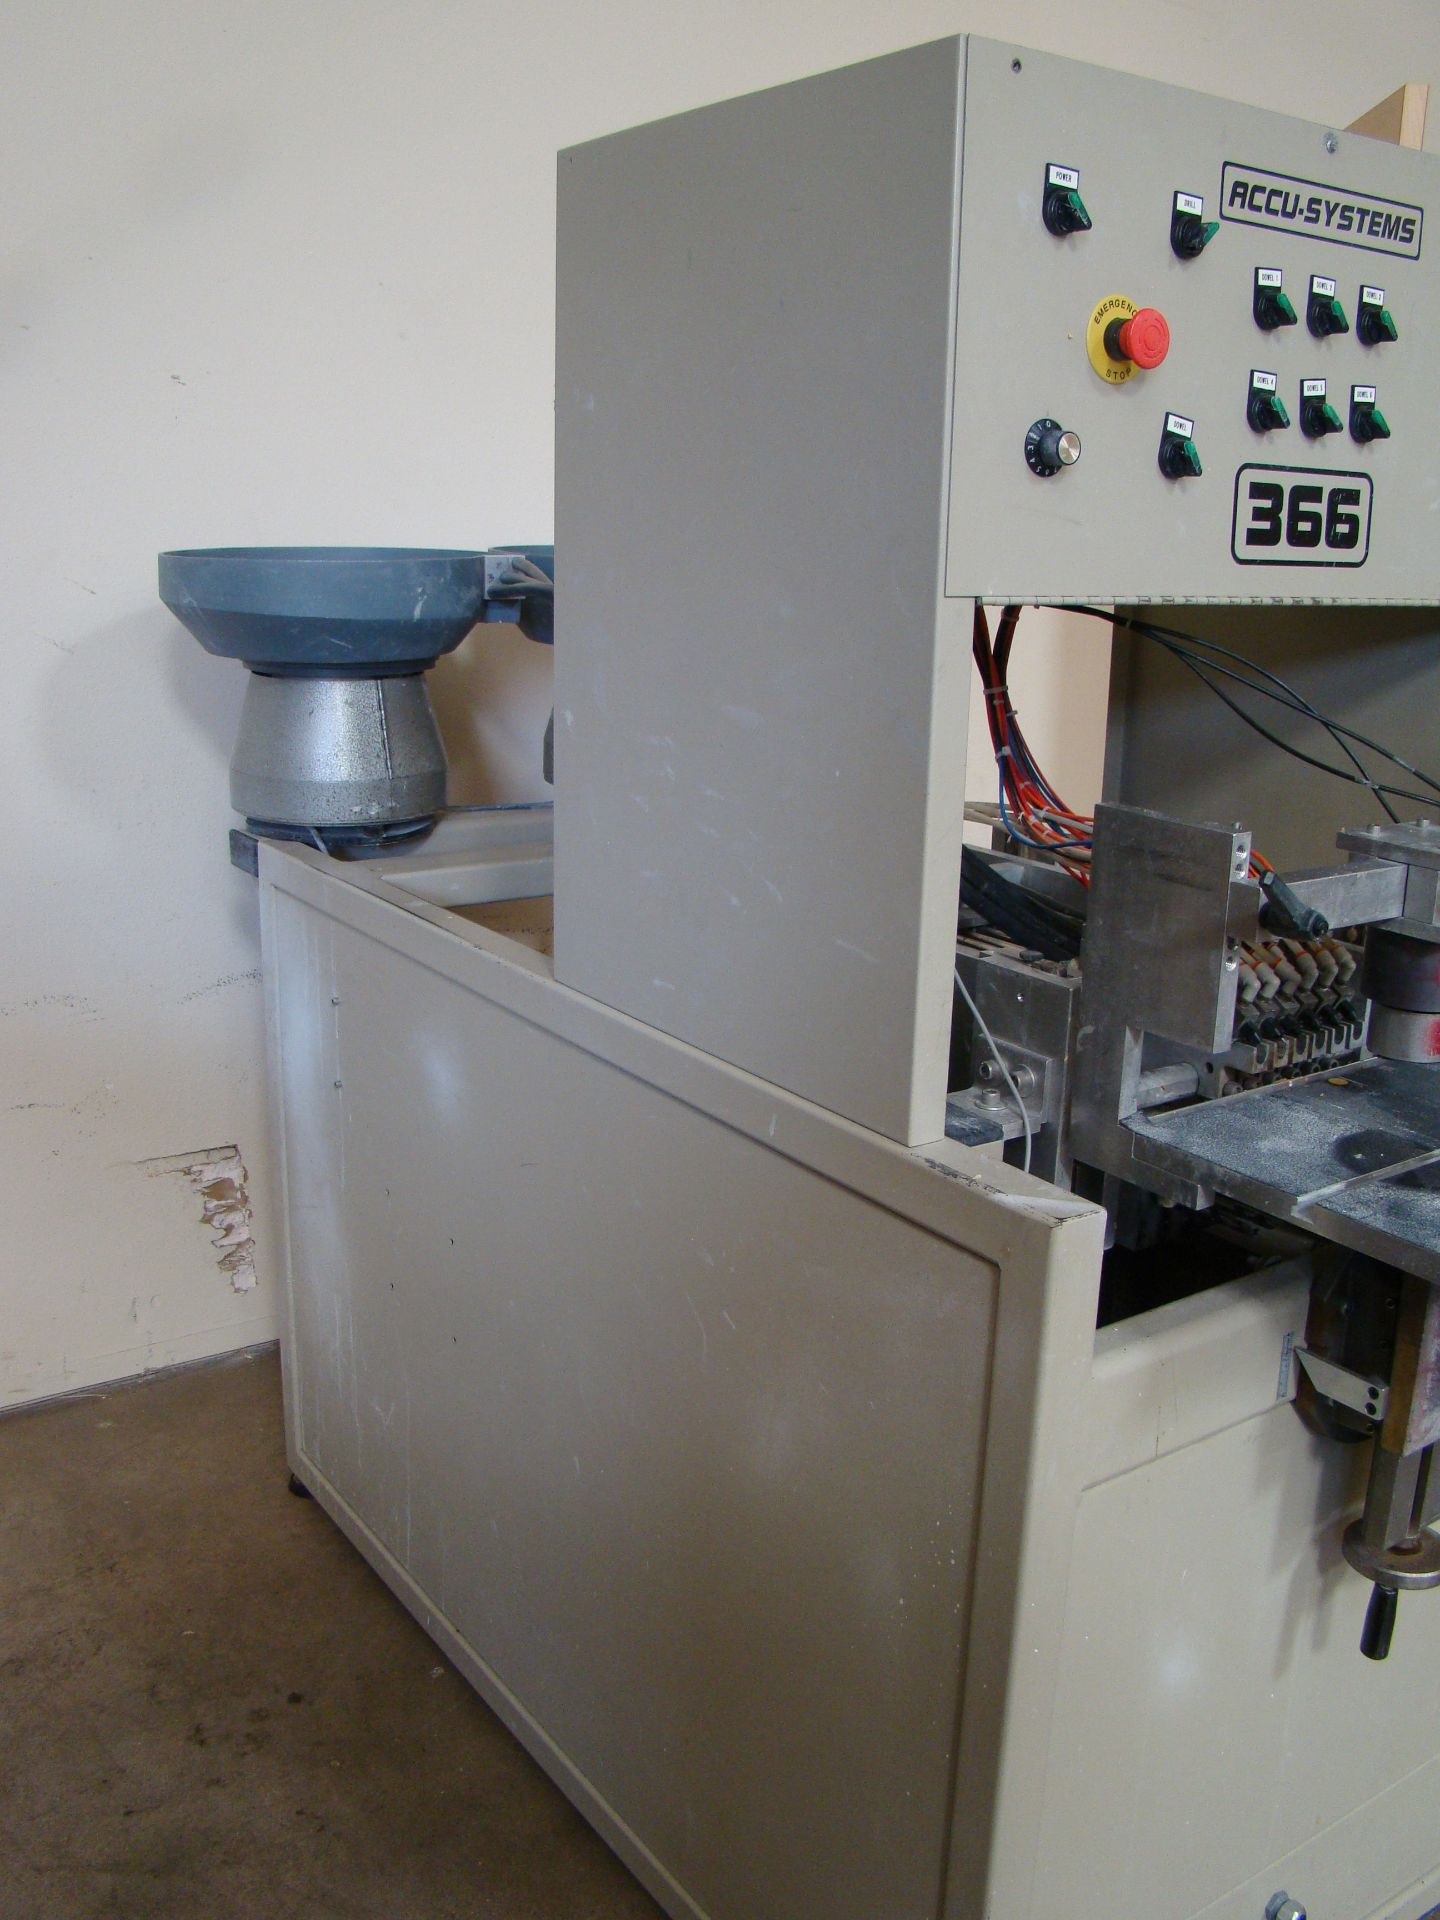 Lot 2 - ACCU-Systems 366 Dowel Insertion Machine with Foot Pedal, Vibratory Bowl Feeders, Glue Pot 220